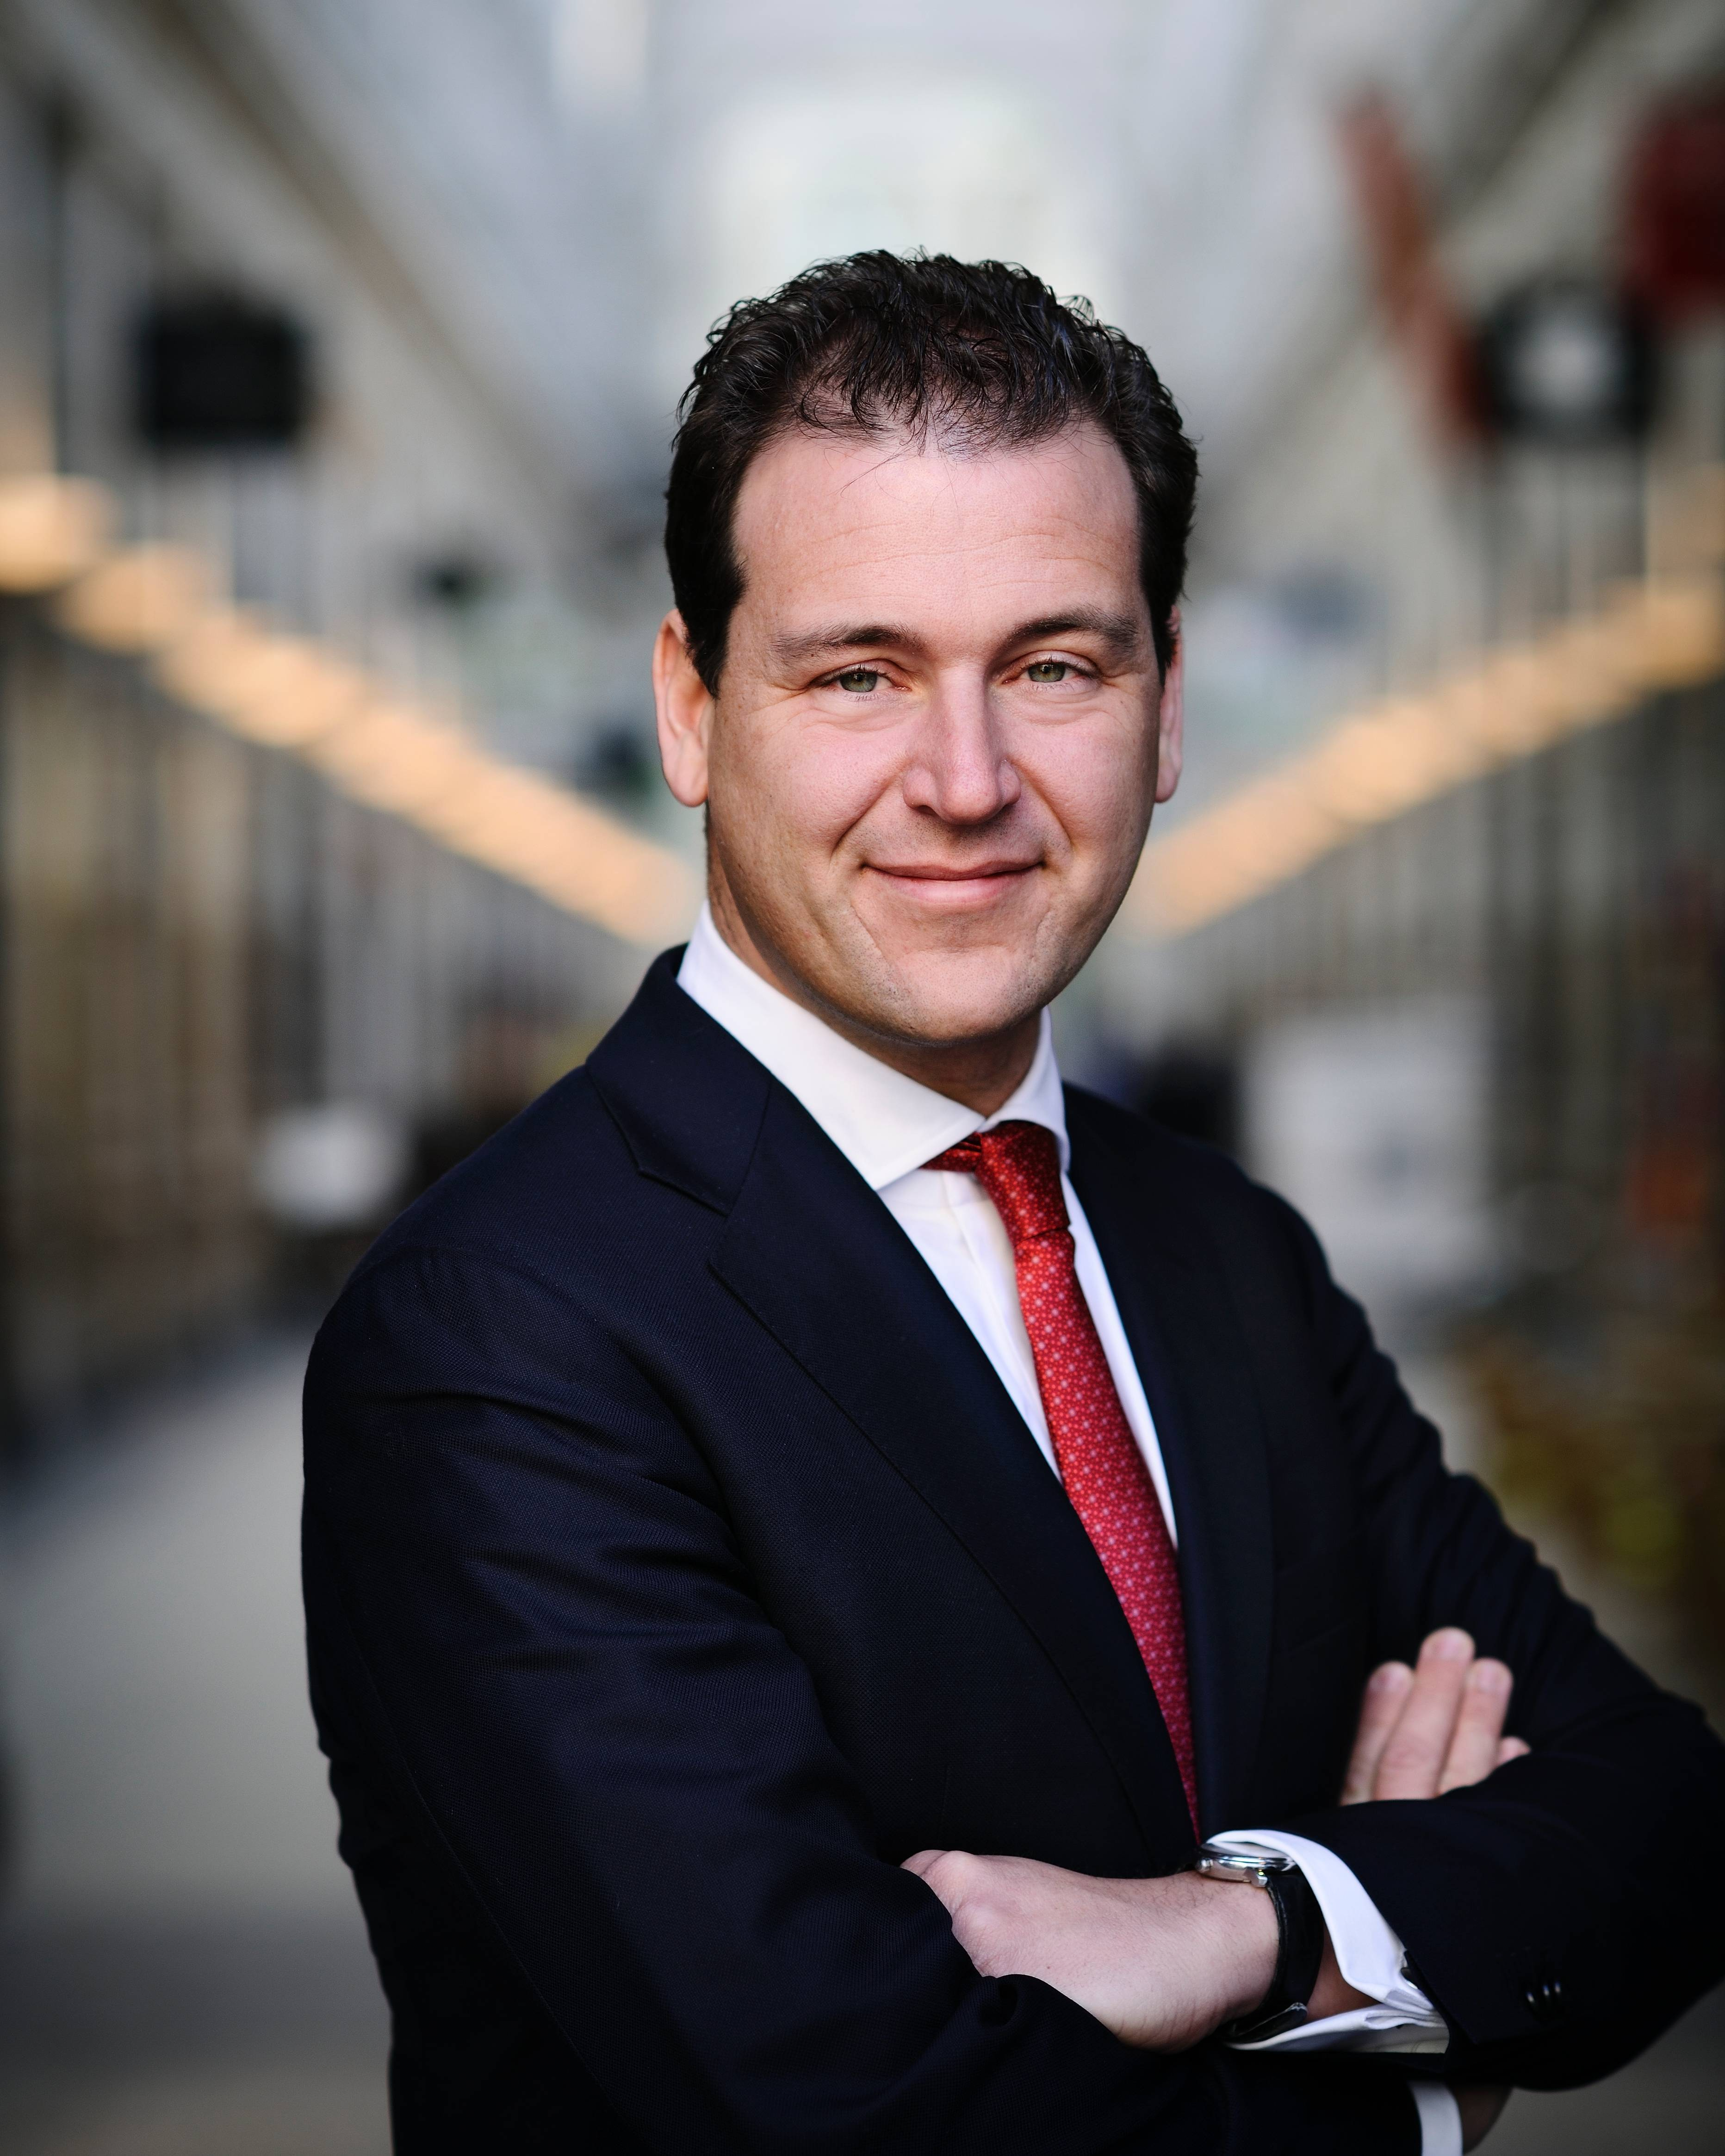 The 43-year old son of father (?) and mother(?) Lodewijk Asscher in 2018 photo. Lodewijk Asscher earned a 0.2 million dollar salary - leaving the net worth at 0.6 million in 2018